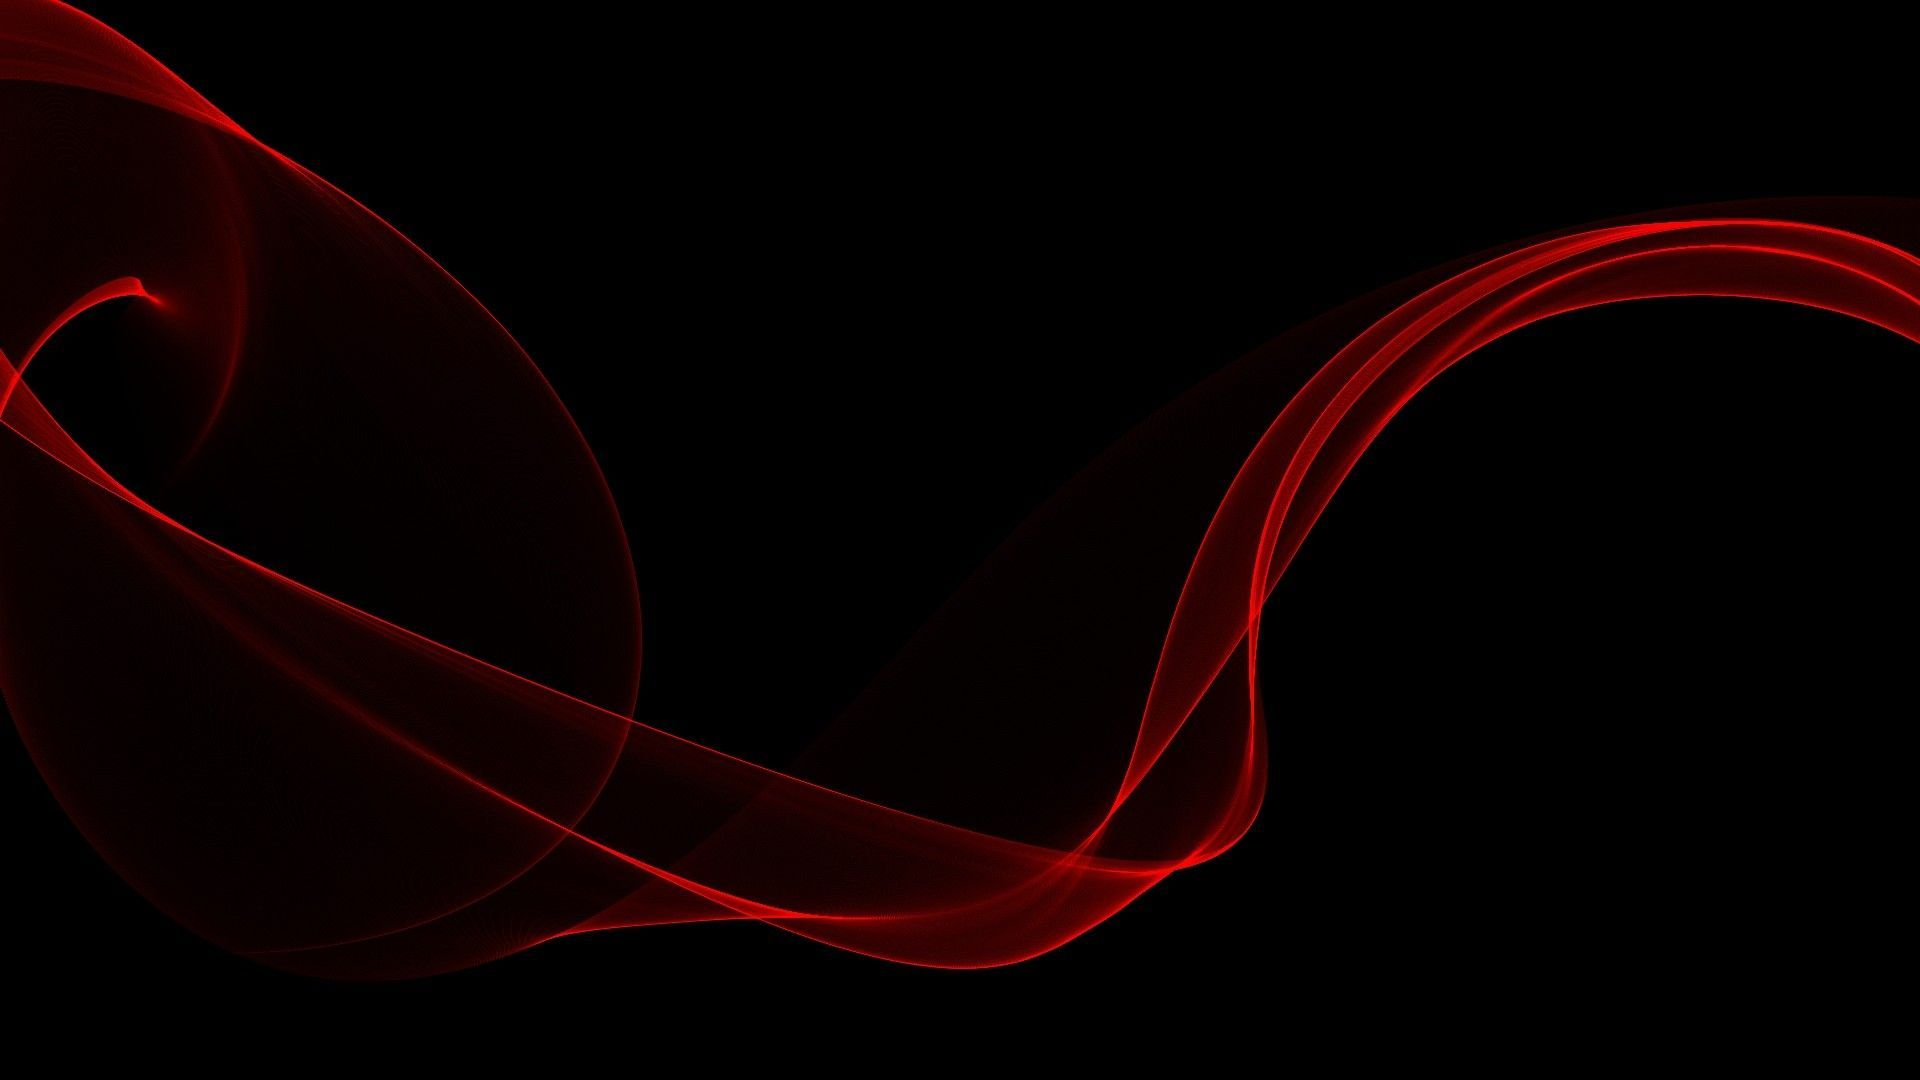 Black and white and red abstract wallpaper